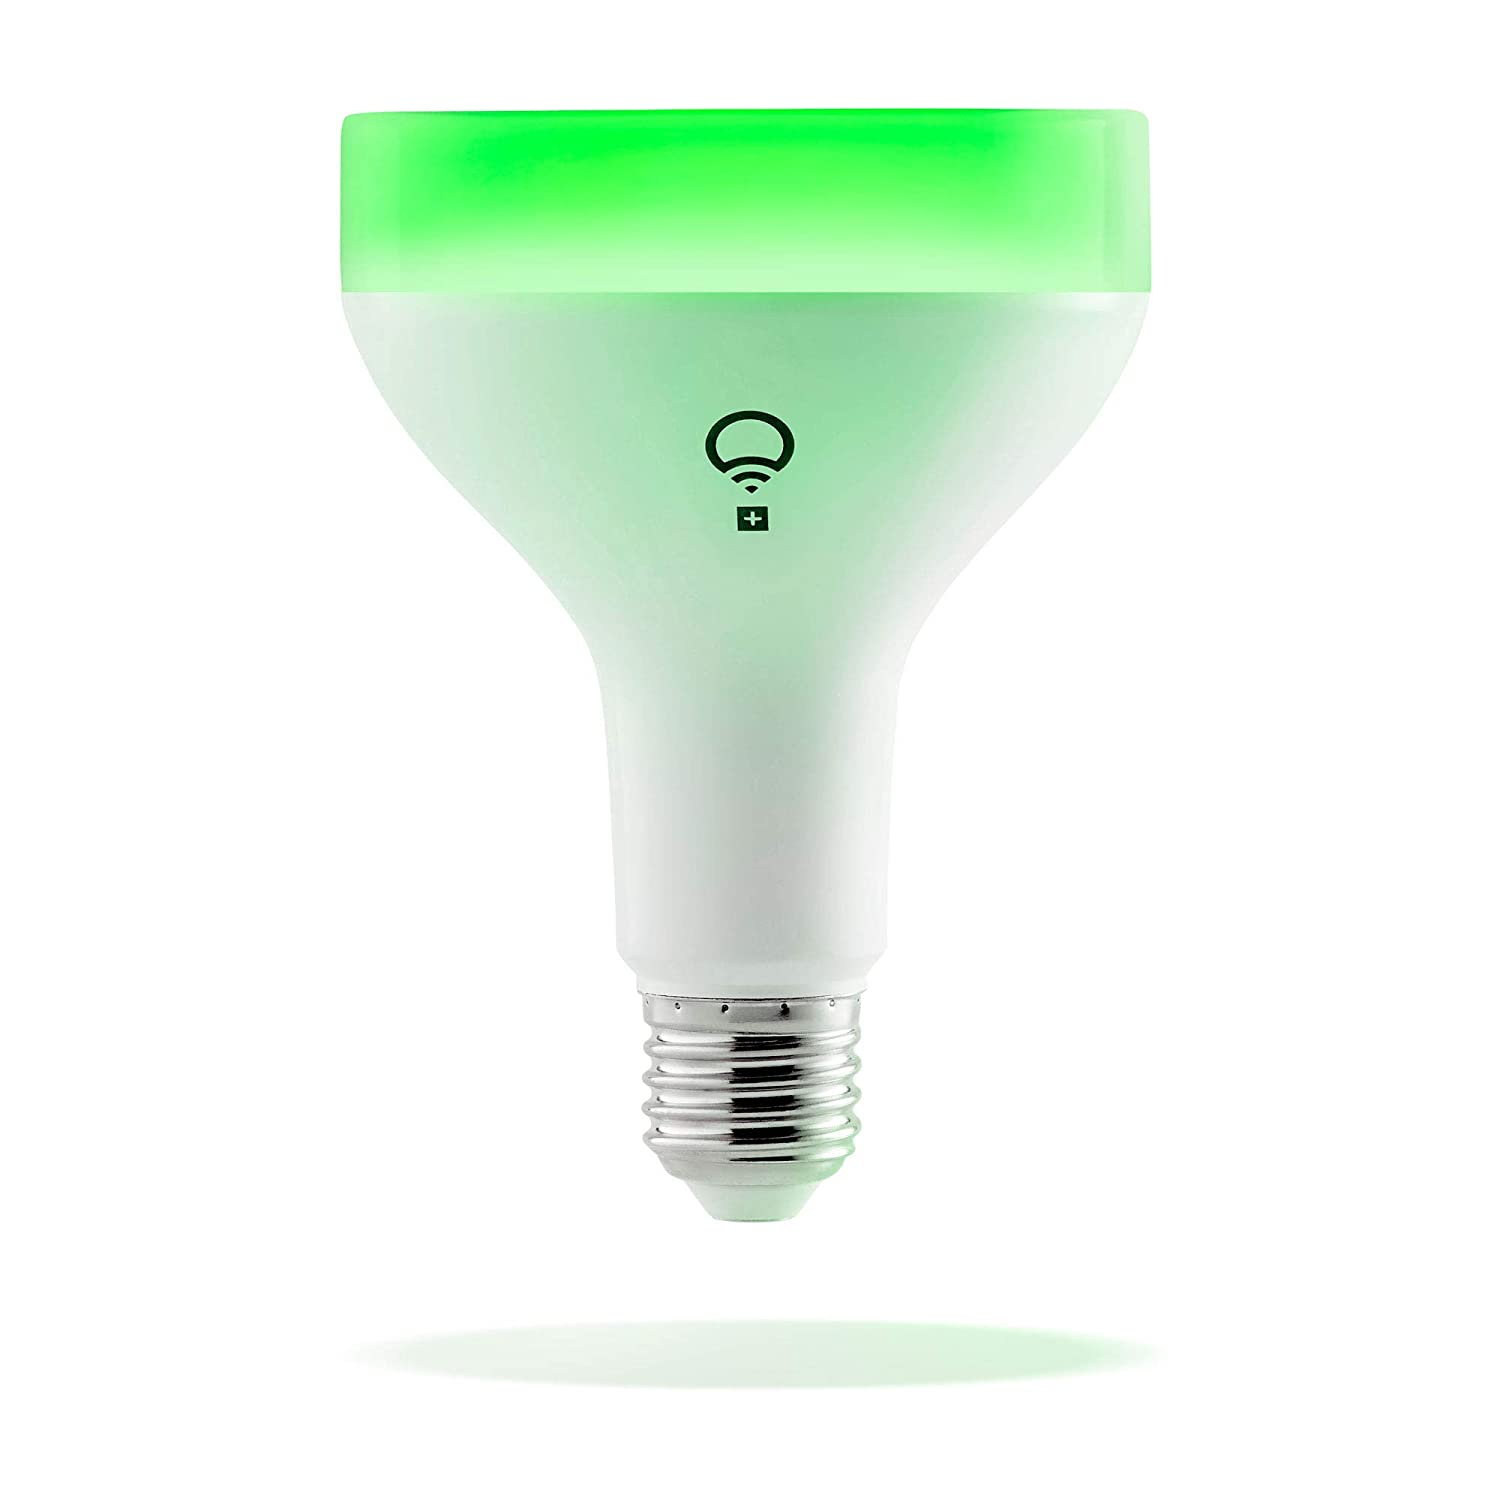 LIFX + (BR30) Wi-Fi Smart LED Light Bulb with Infrared for Night Vision, Adjustable, Multicolor, Dimmable, No Hub Required, Works with Alexa, Apple HomeKit and Google Assistant